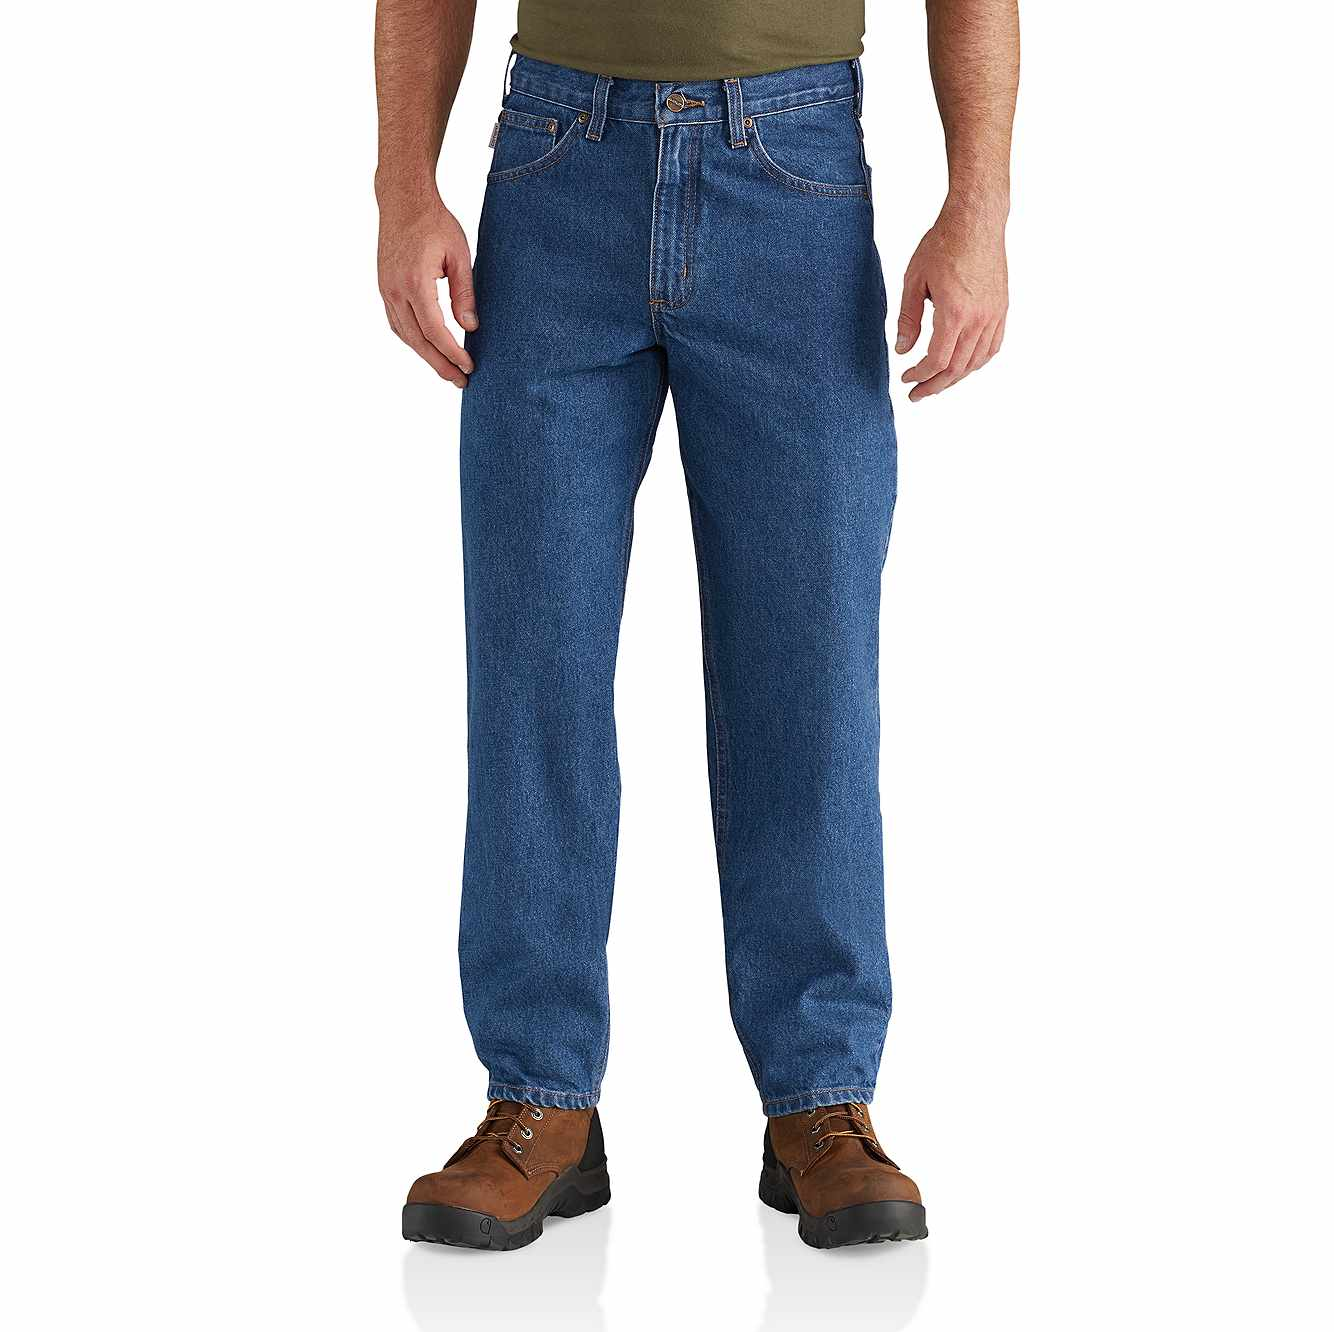 Carhartt Men's Relaxed Fit Jean - Dark Stonewash